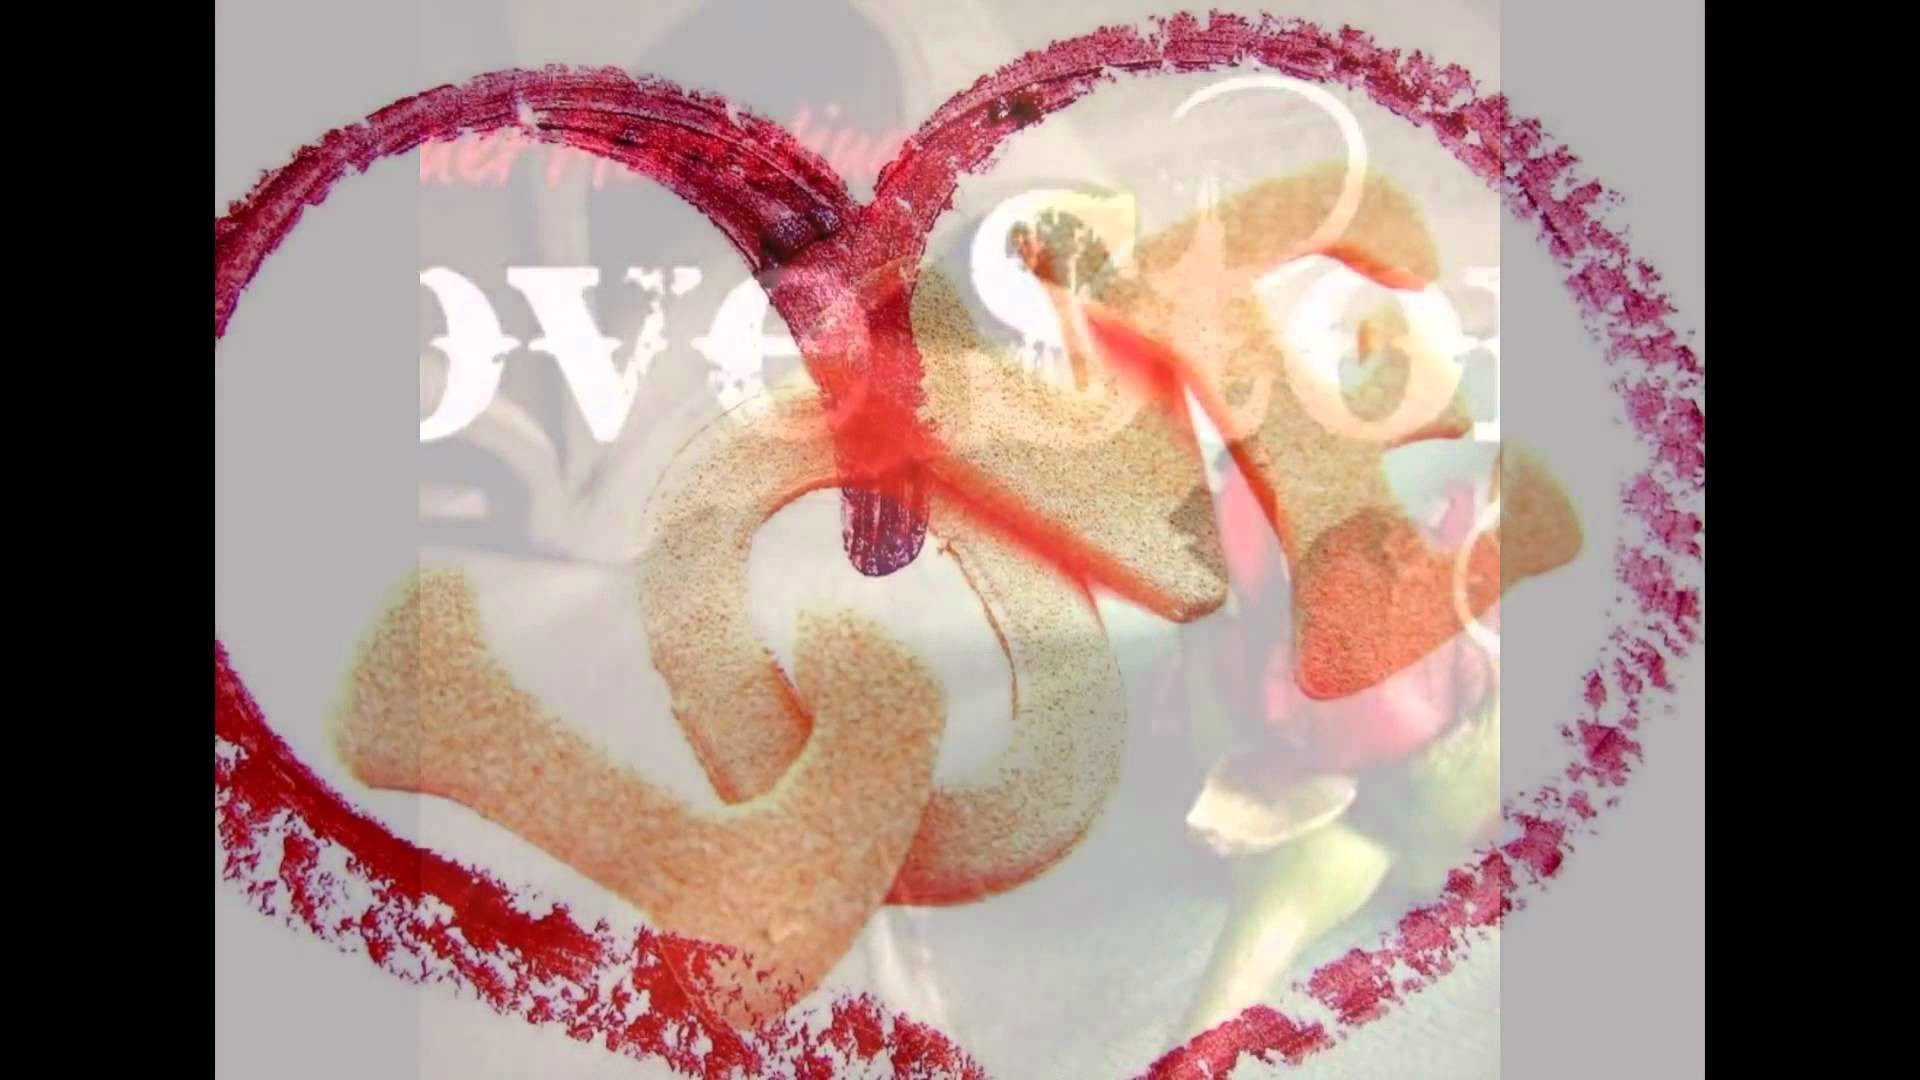 Love And Rose Symbol Of Love 2014 Live Wallpaper 2014 - Hd Love You Animated - HD Wallpaper